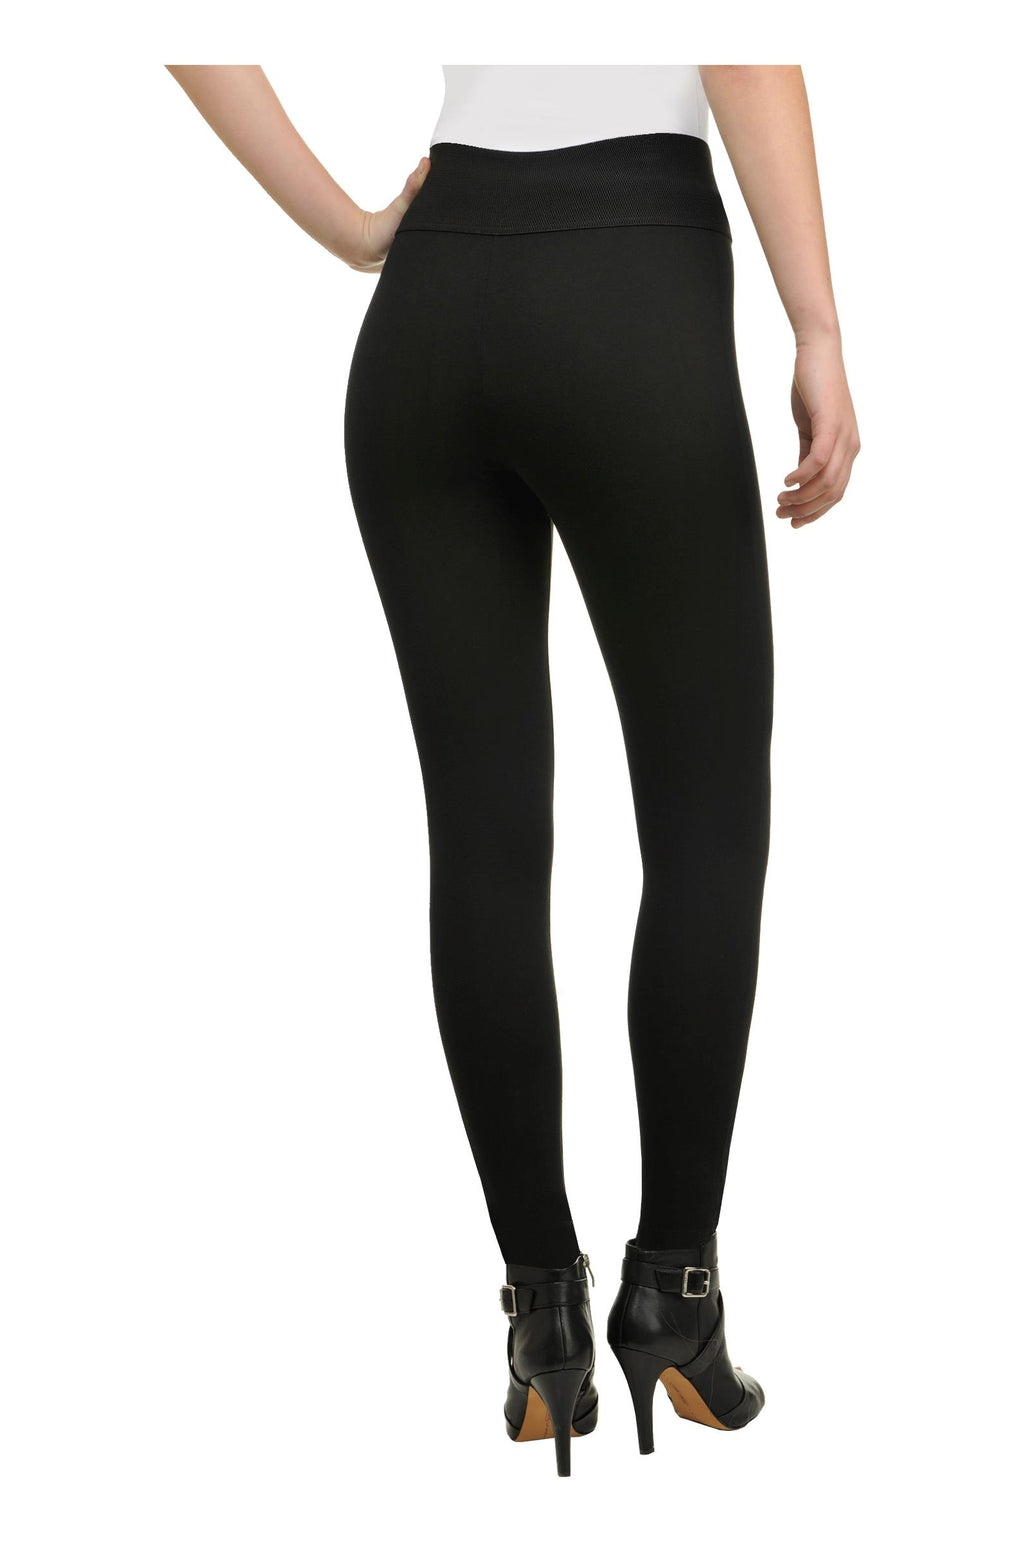 Nygard Slims 3.5 Ruched Legging